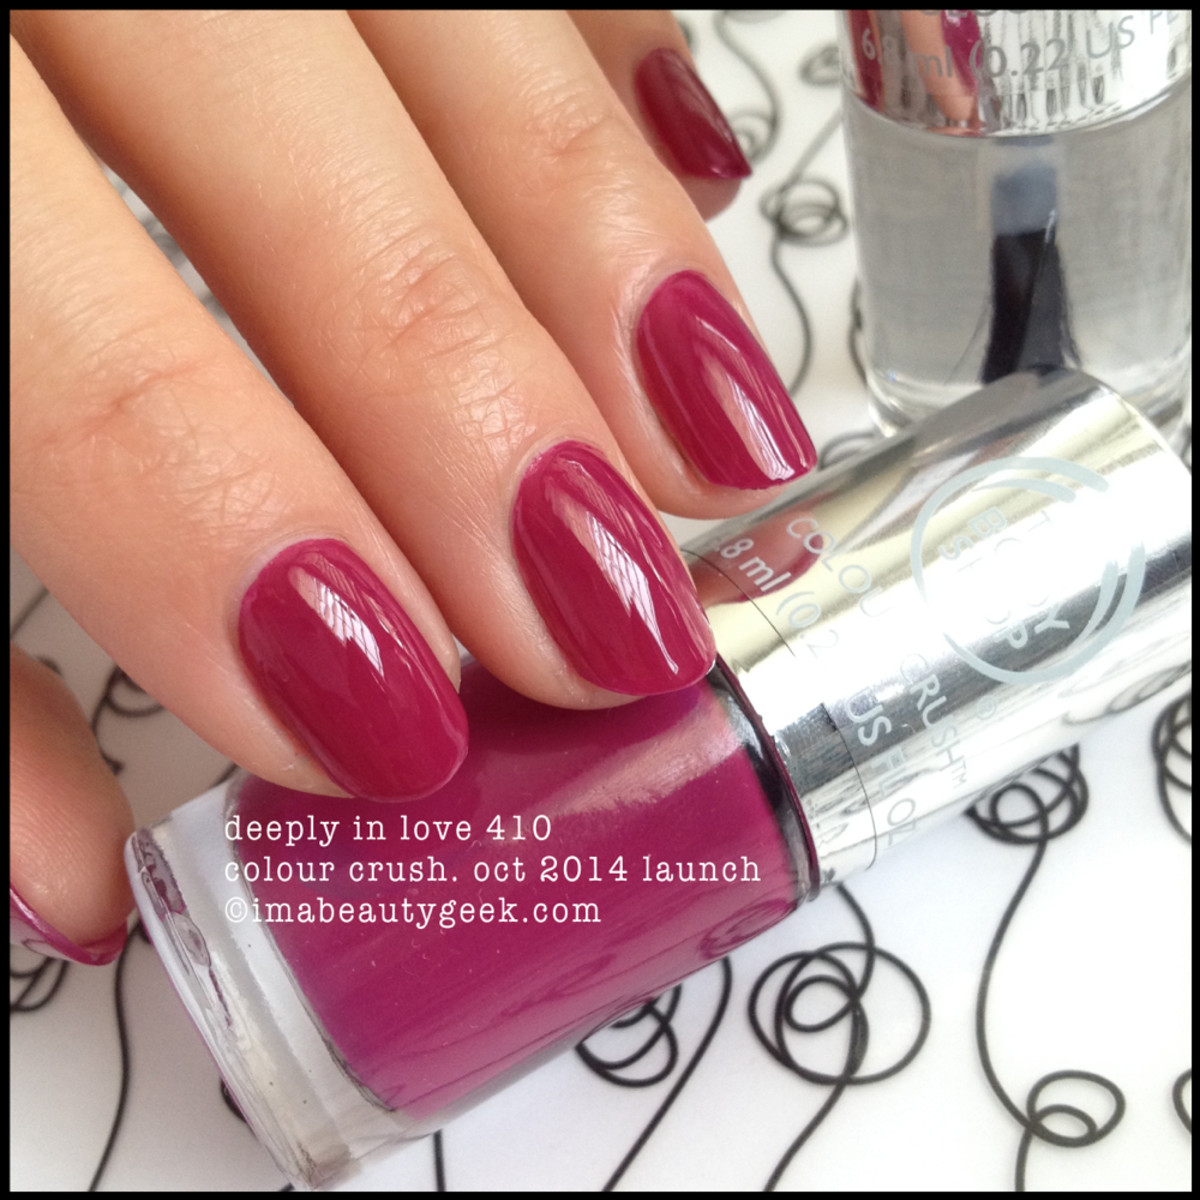 Body Shop Deeply in Love 410 Colour Crush Polish